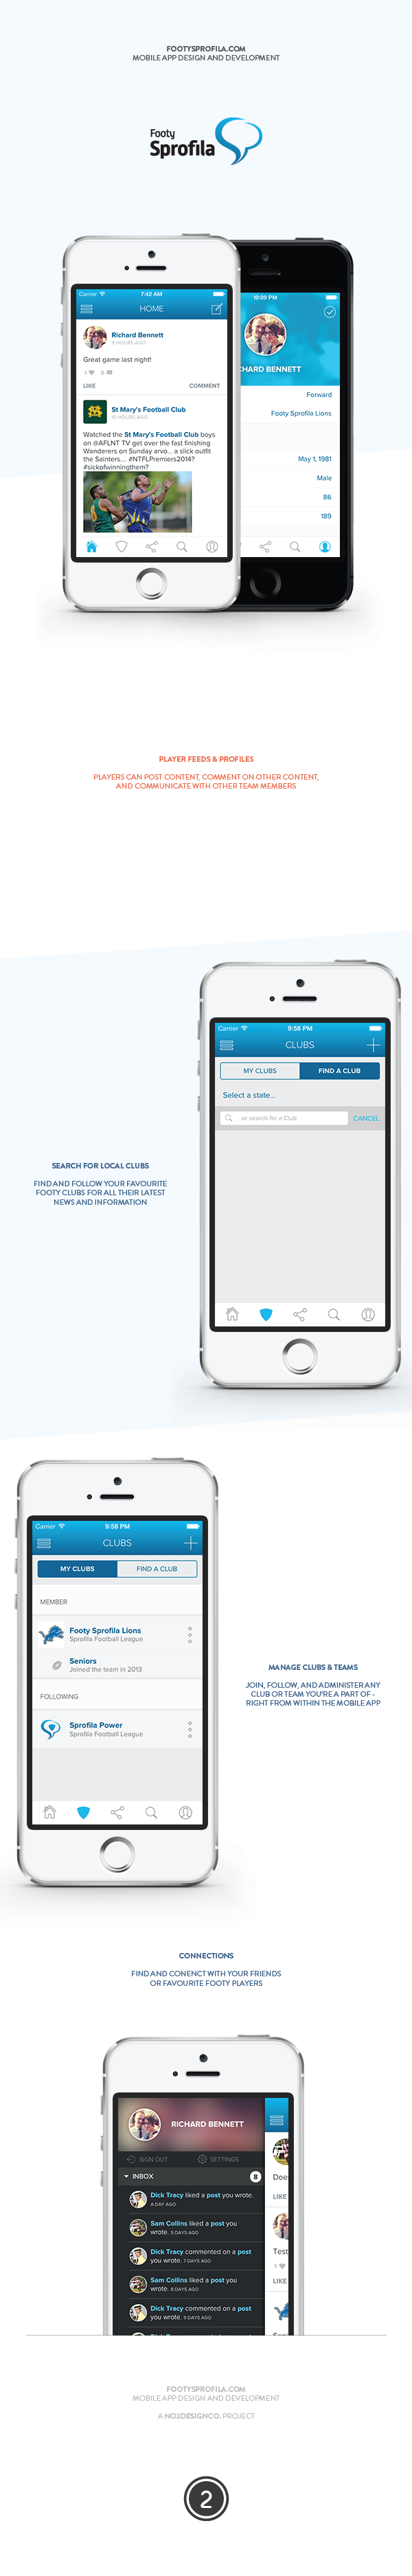 ios android phonegap mobile UI ux HTML css JavaScript IxD iphone